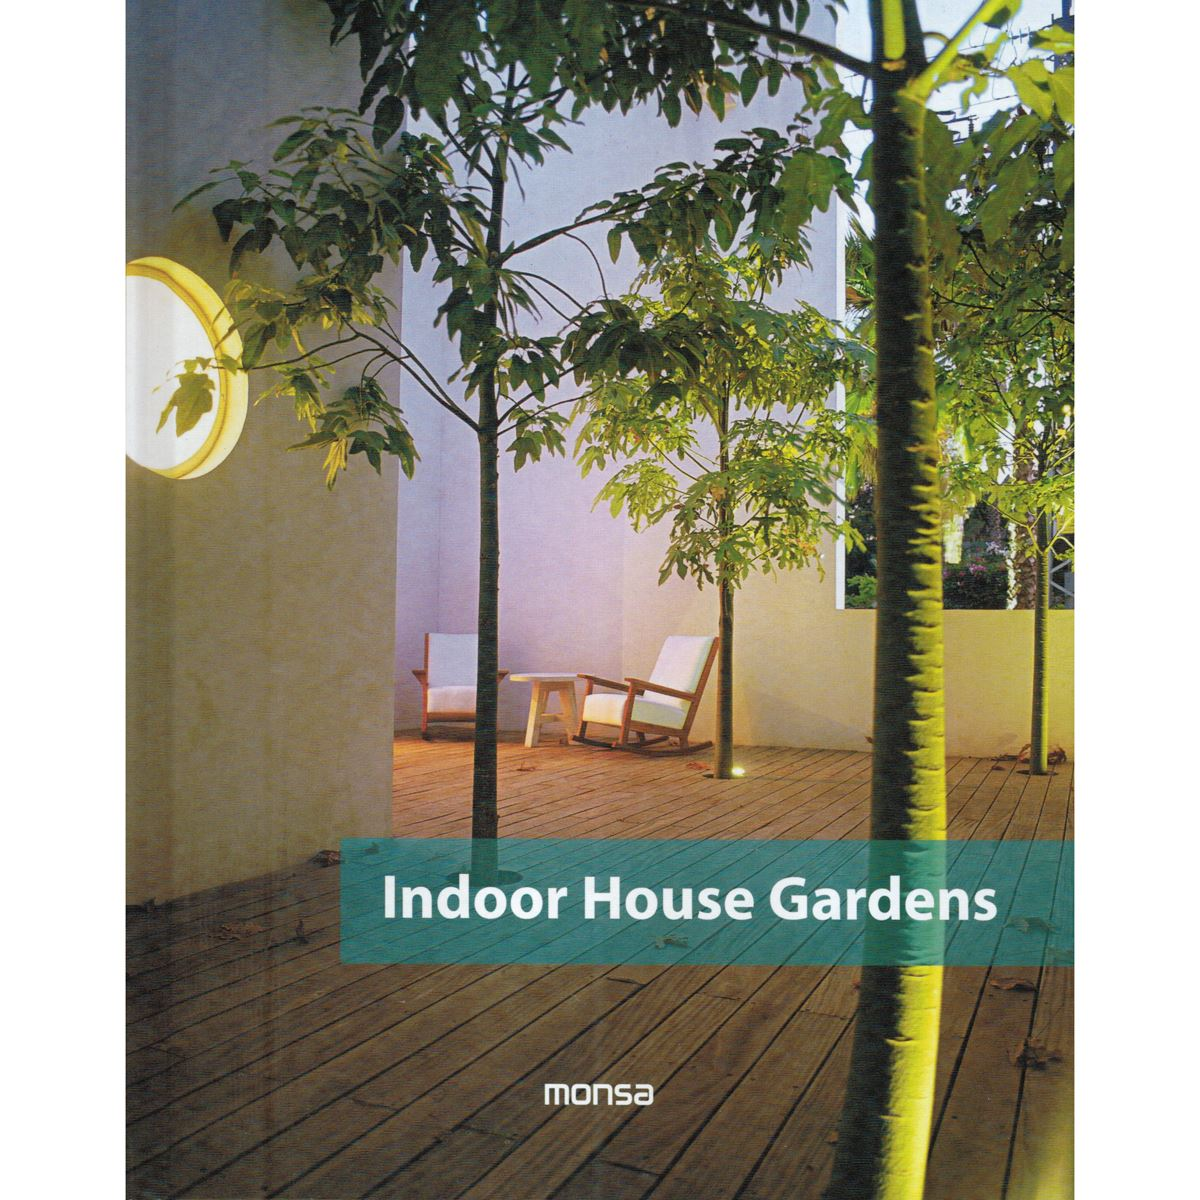 Indoor houses gardens